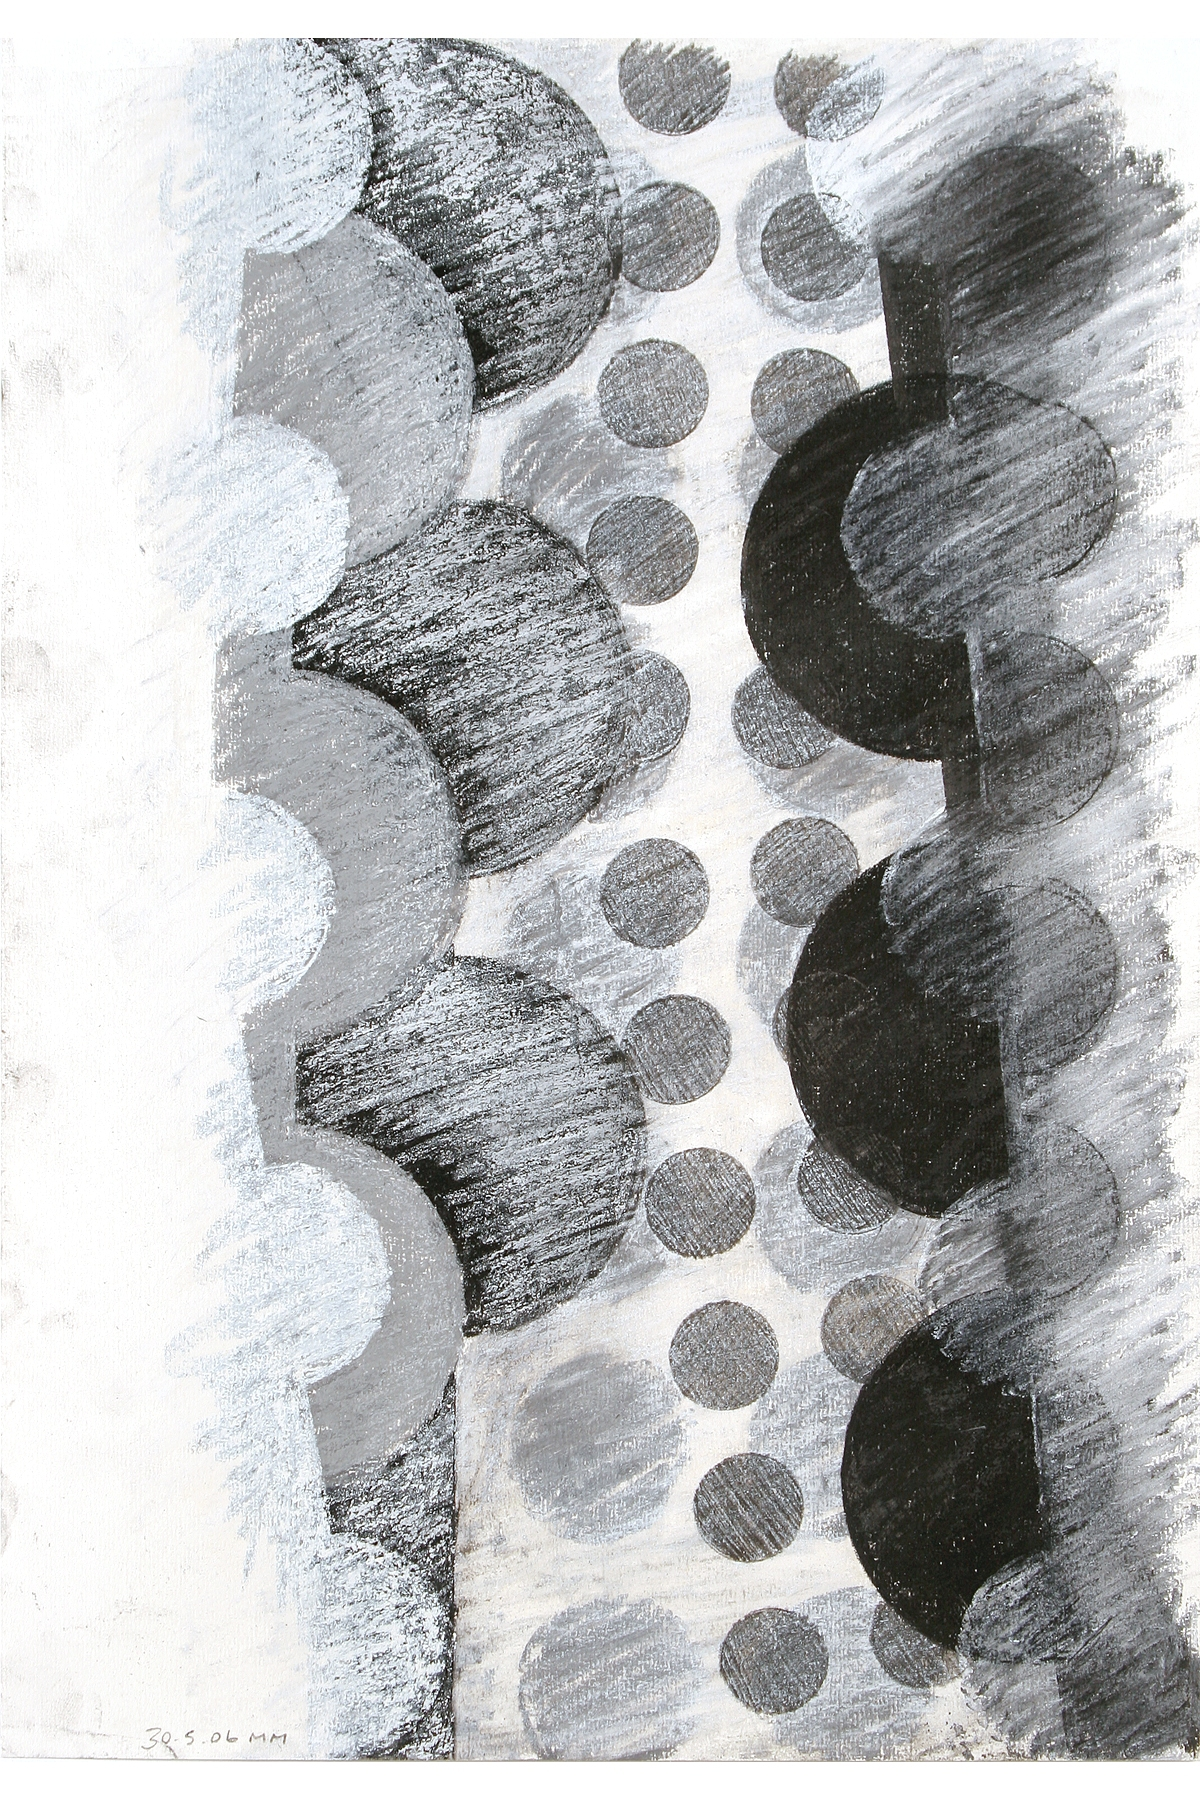 Mark Milnes, Dalek Drawing 14, Charcoal and pencil on paper.